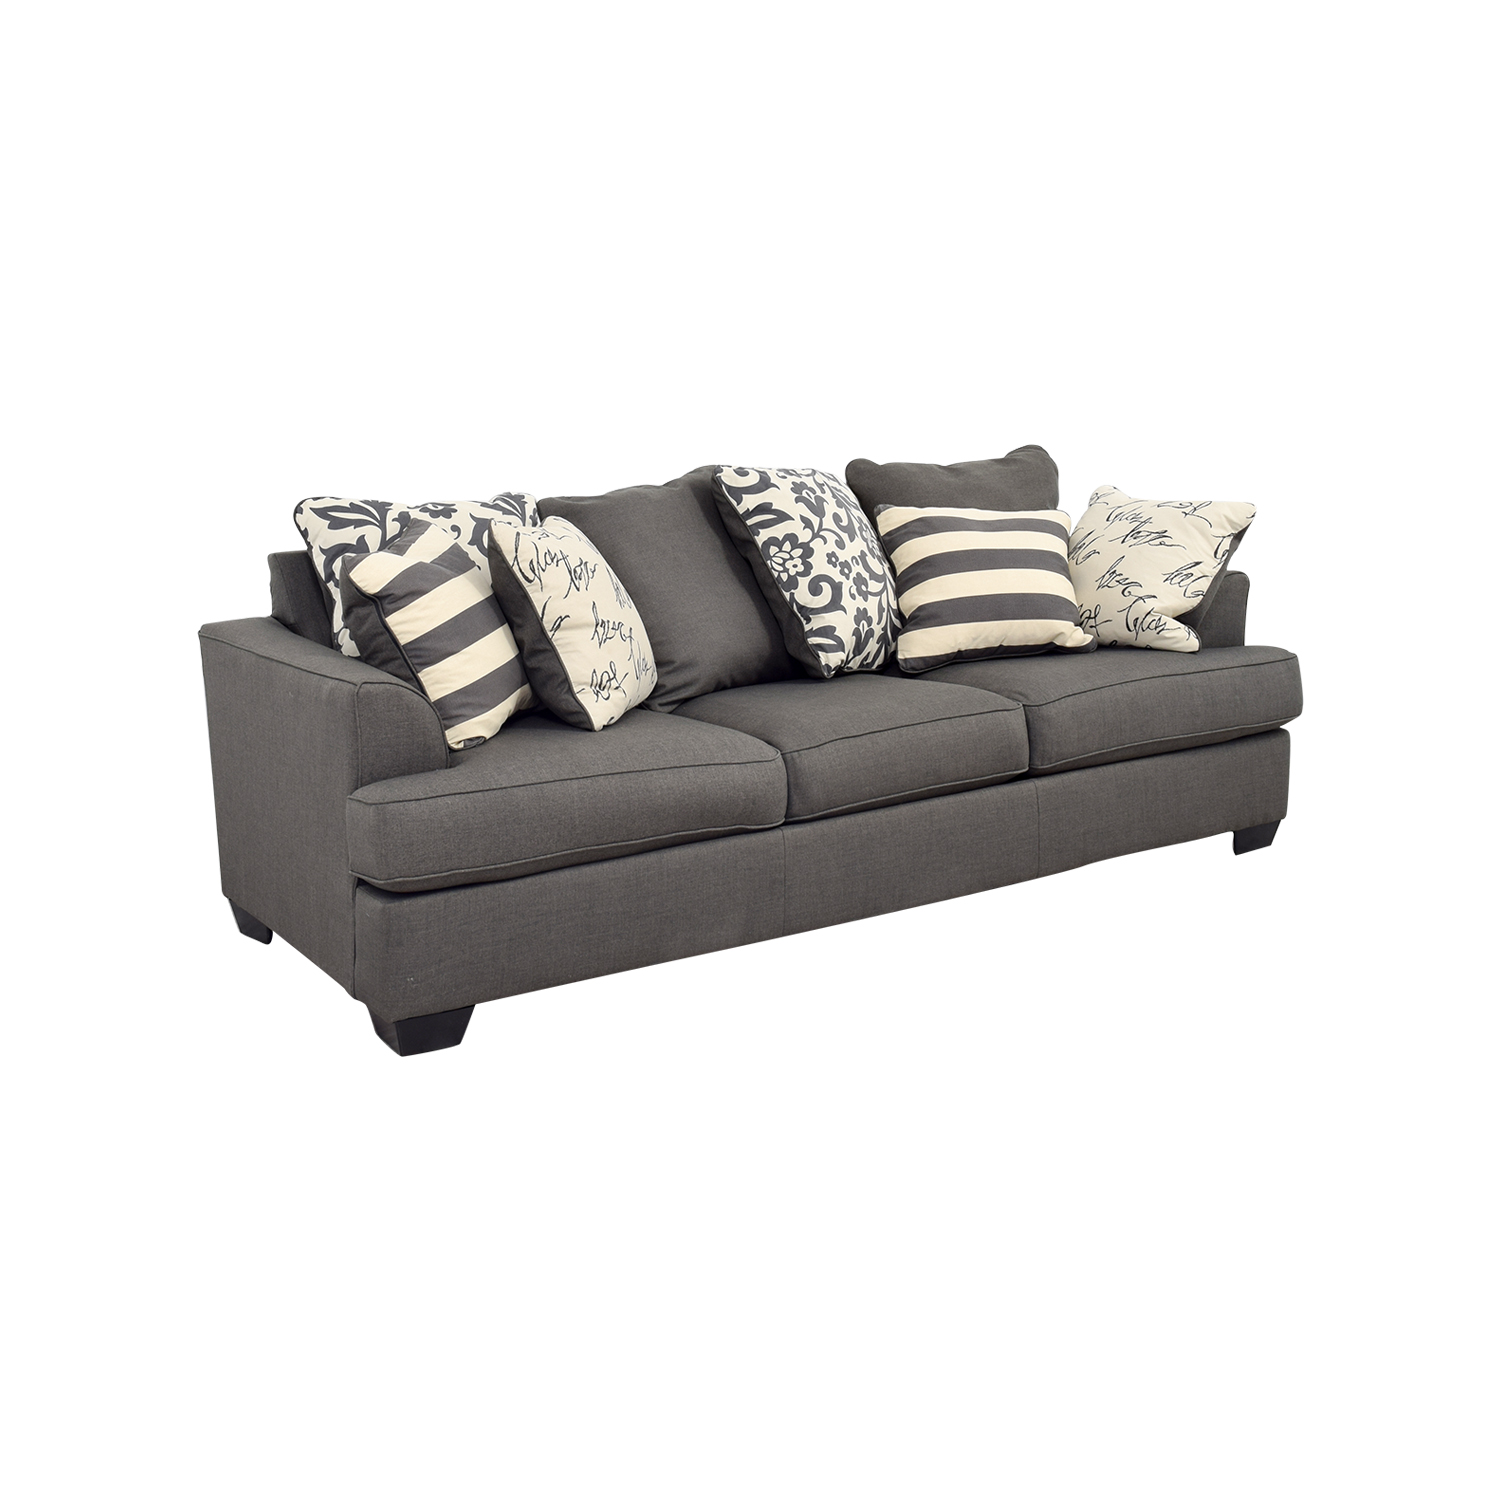 Superieur ... Buy Ashley Furniture Levon Grey Sofa Ashley Furniture ...